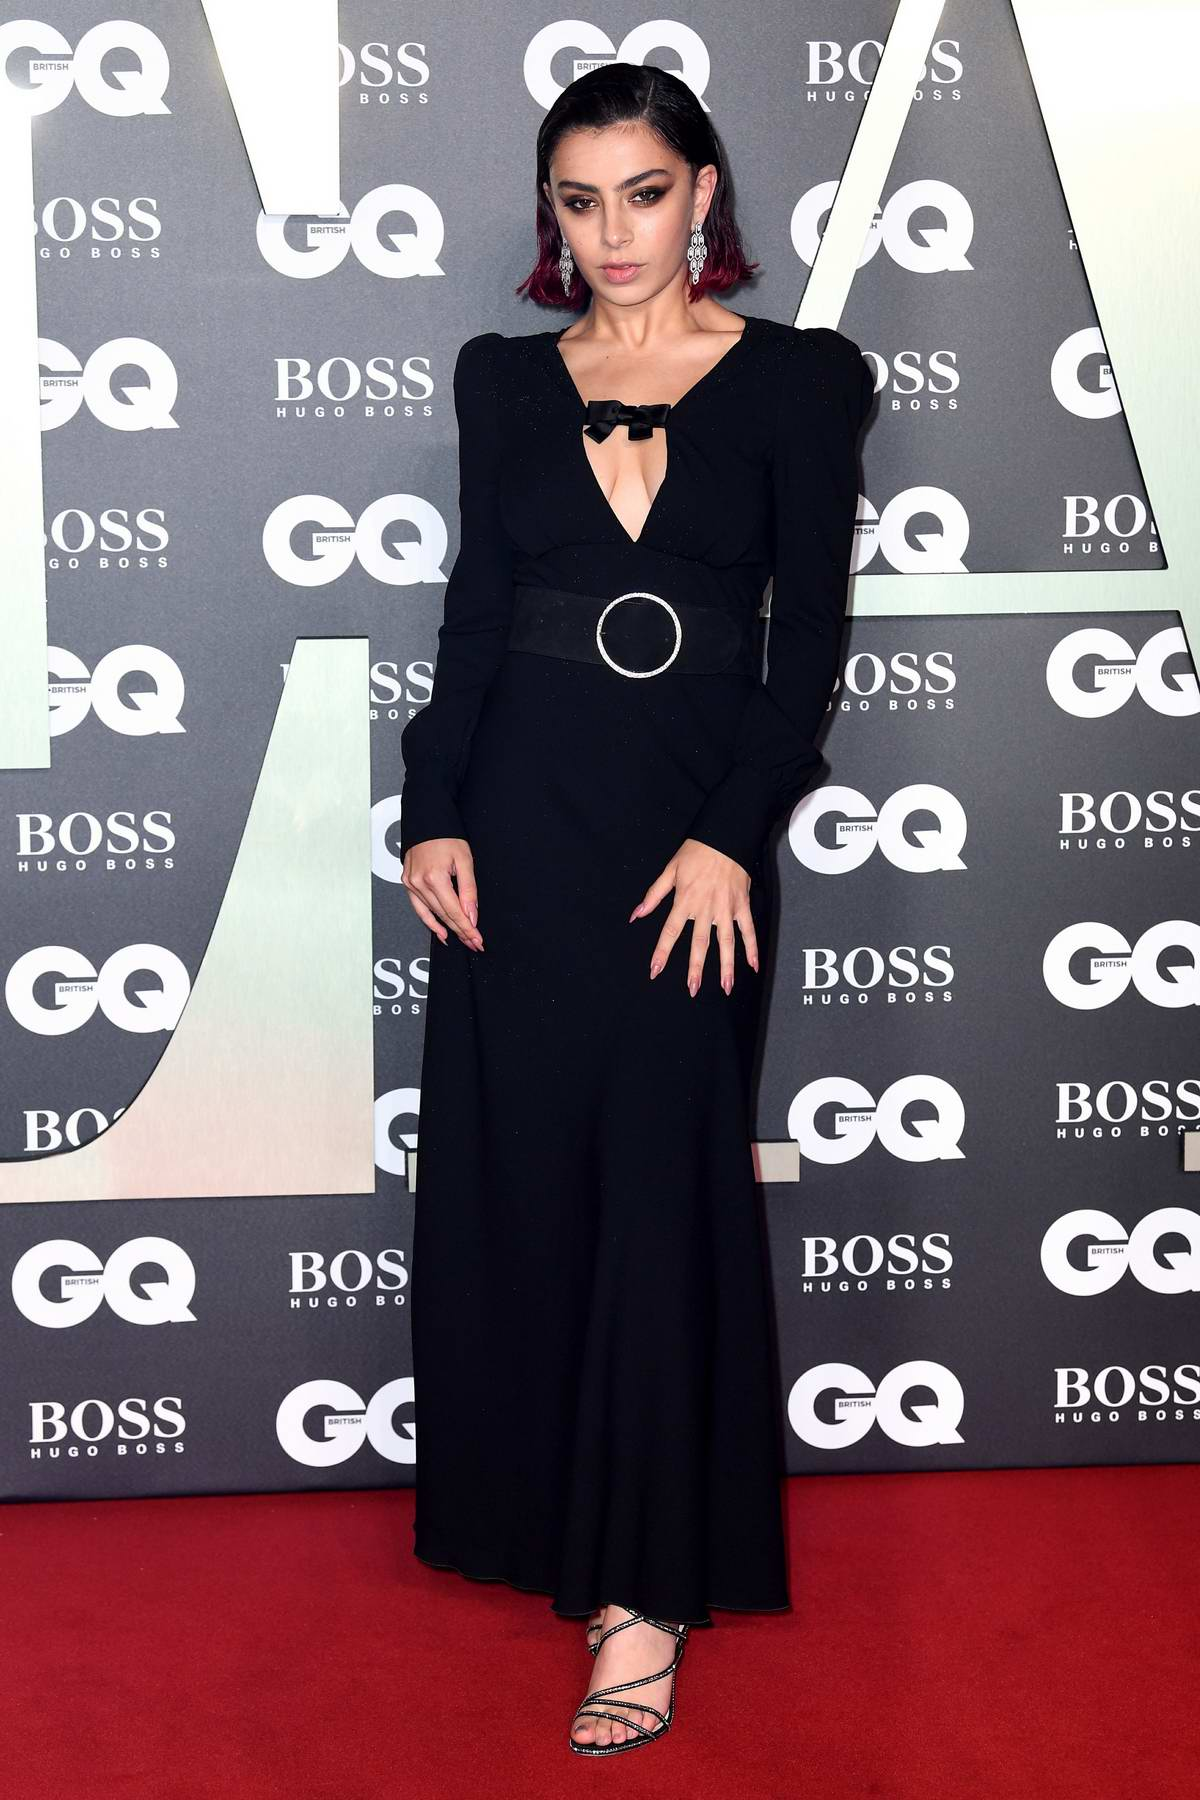 Charli XCX Attends the GQ Men Of The Year Awards 2019 in